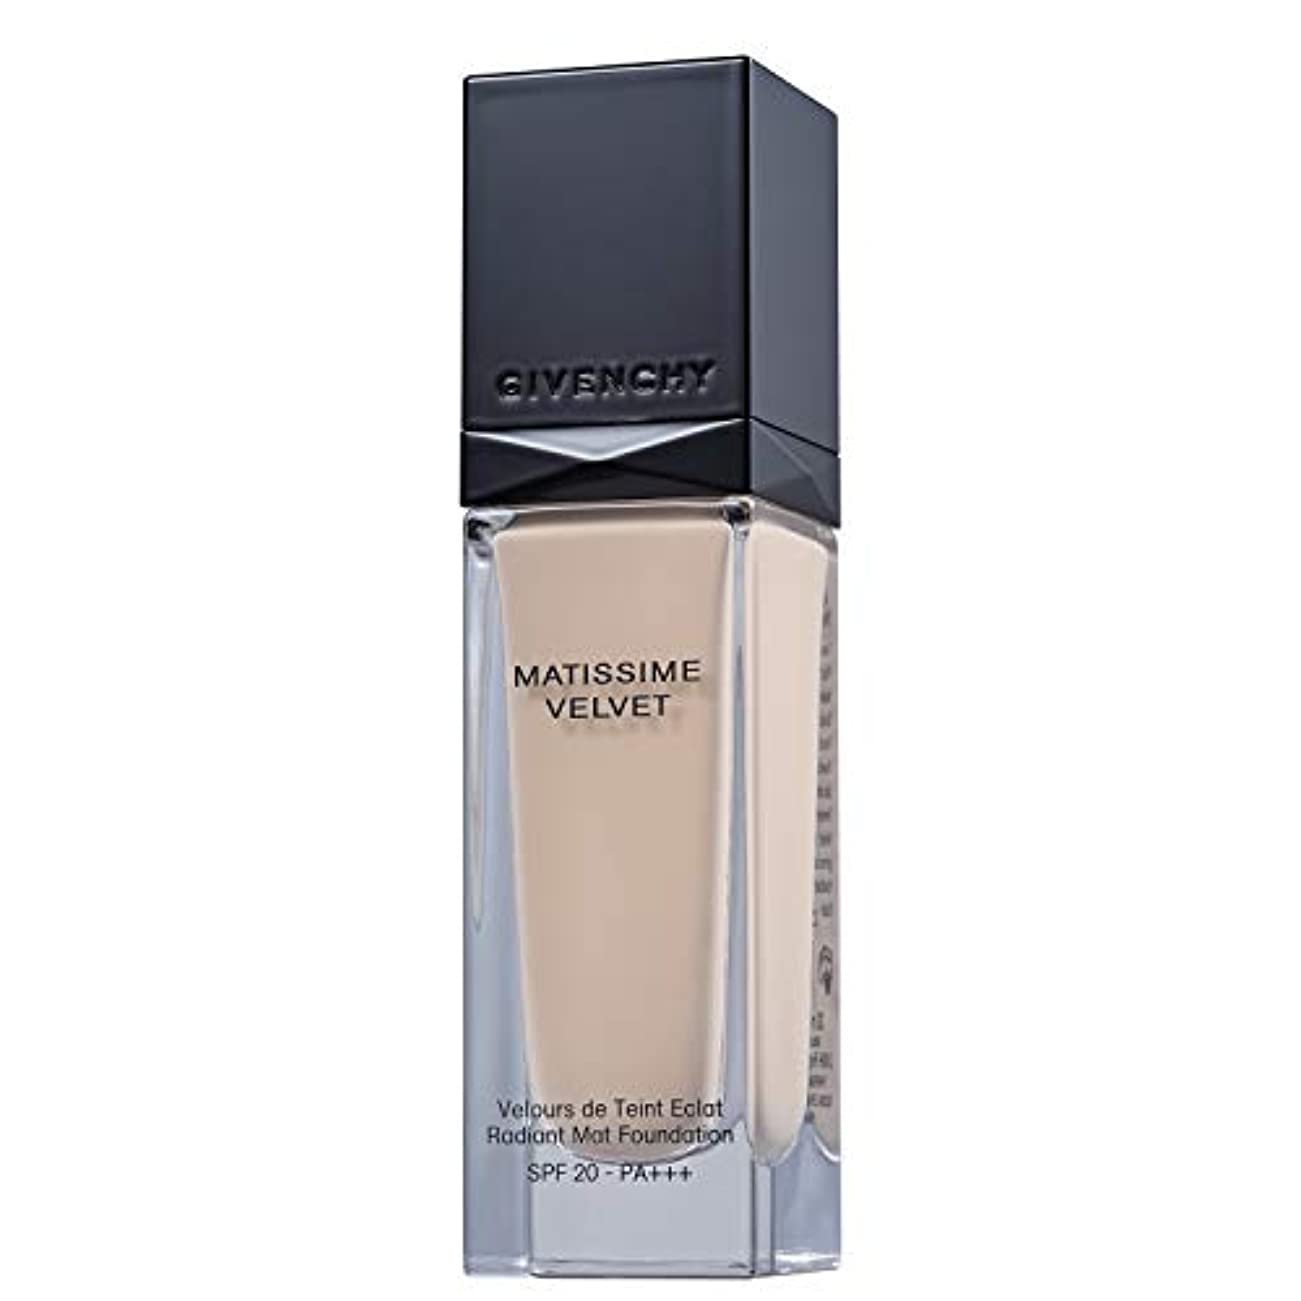 征服者帽子処理するジバンシィ Matissime Velvet Radiant Mat Fluid Foundation SPF 20 - #01 Mat Porcelain 30ml